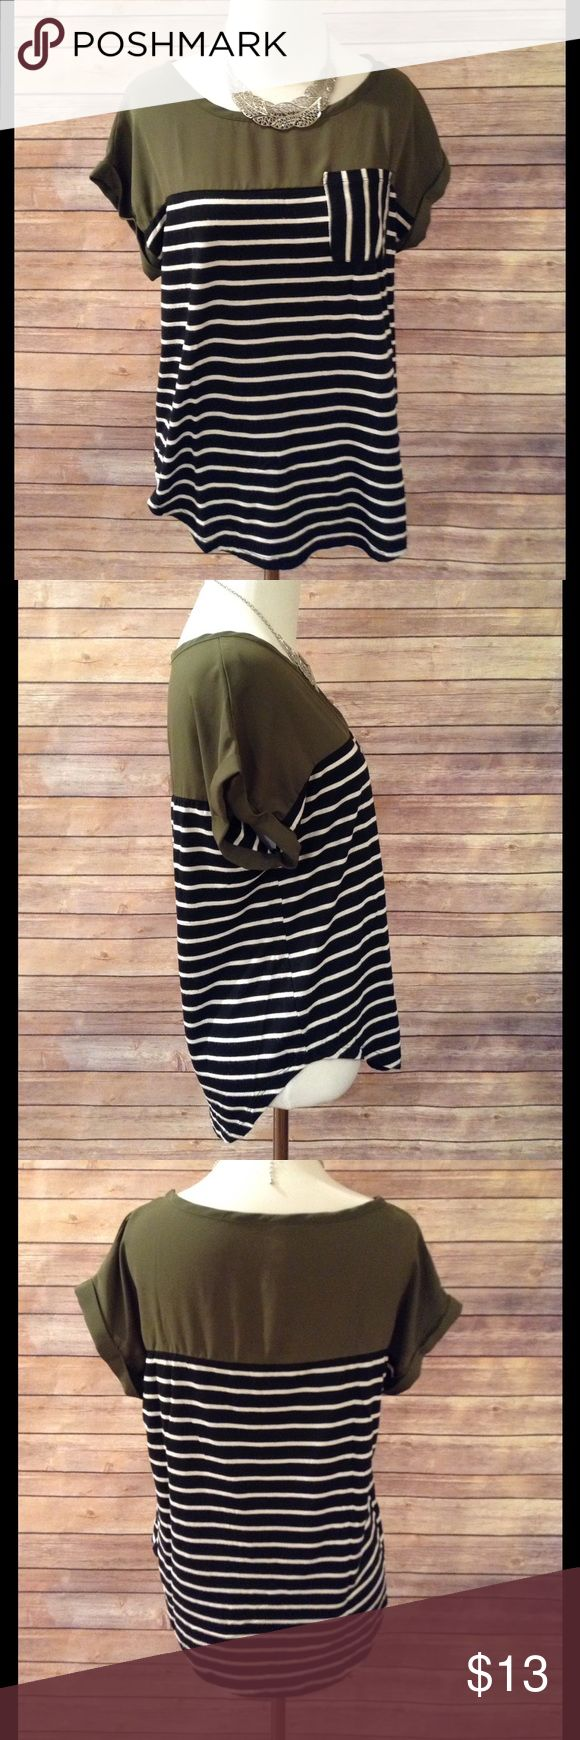 💕CUTE!!! Olive Green and striped Blouse💕 EUC!!! Hi-Lo blouse with pocket on front. Very comfortable and stretchy! Size Medium. Thanks for looking! Tops Blouses